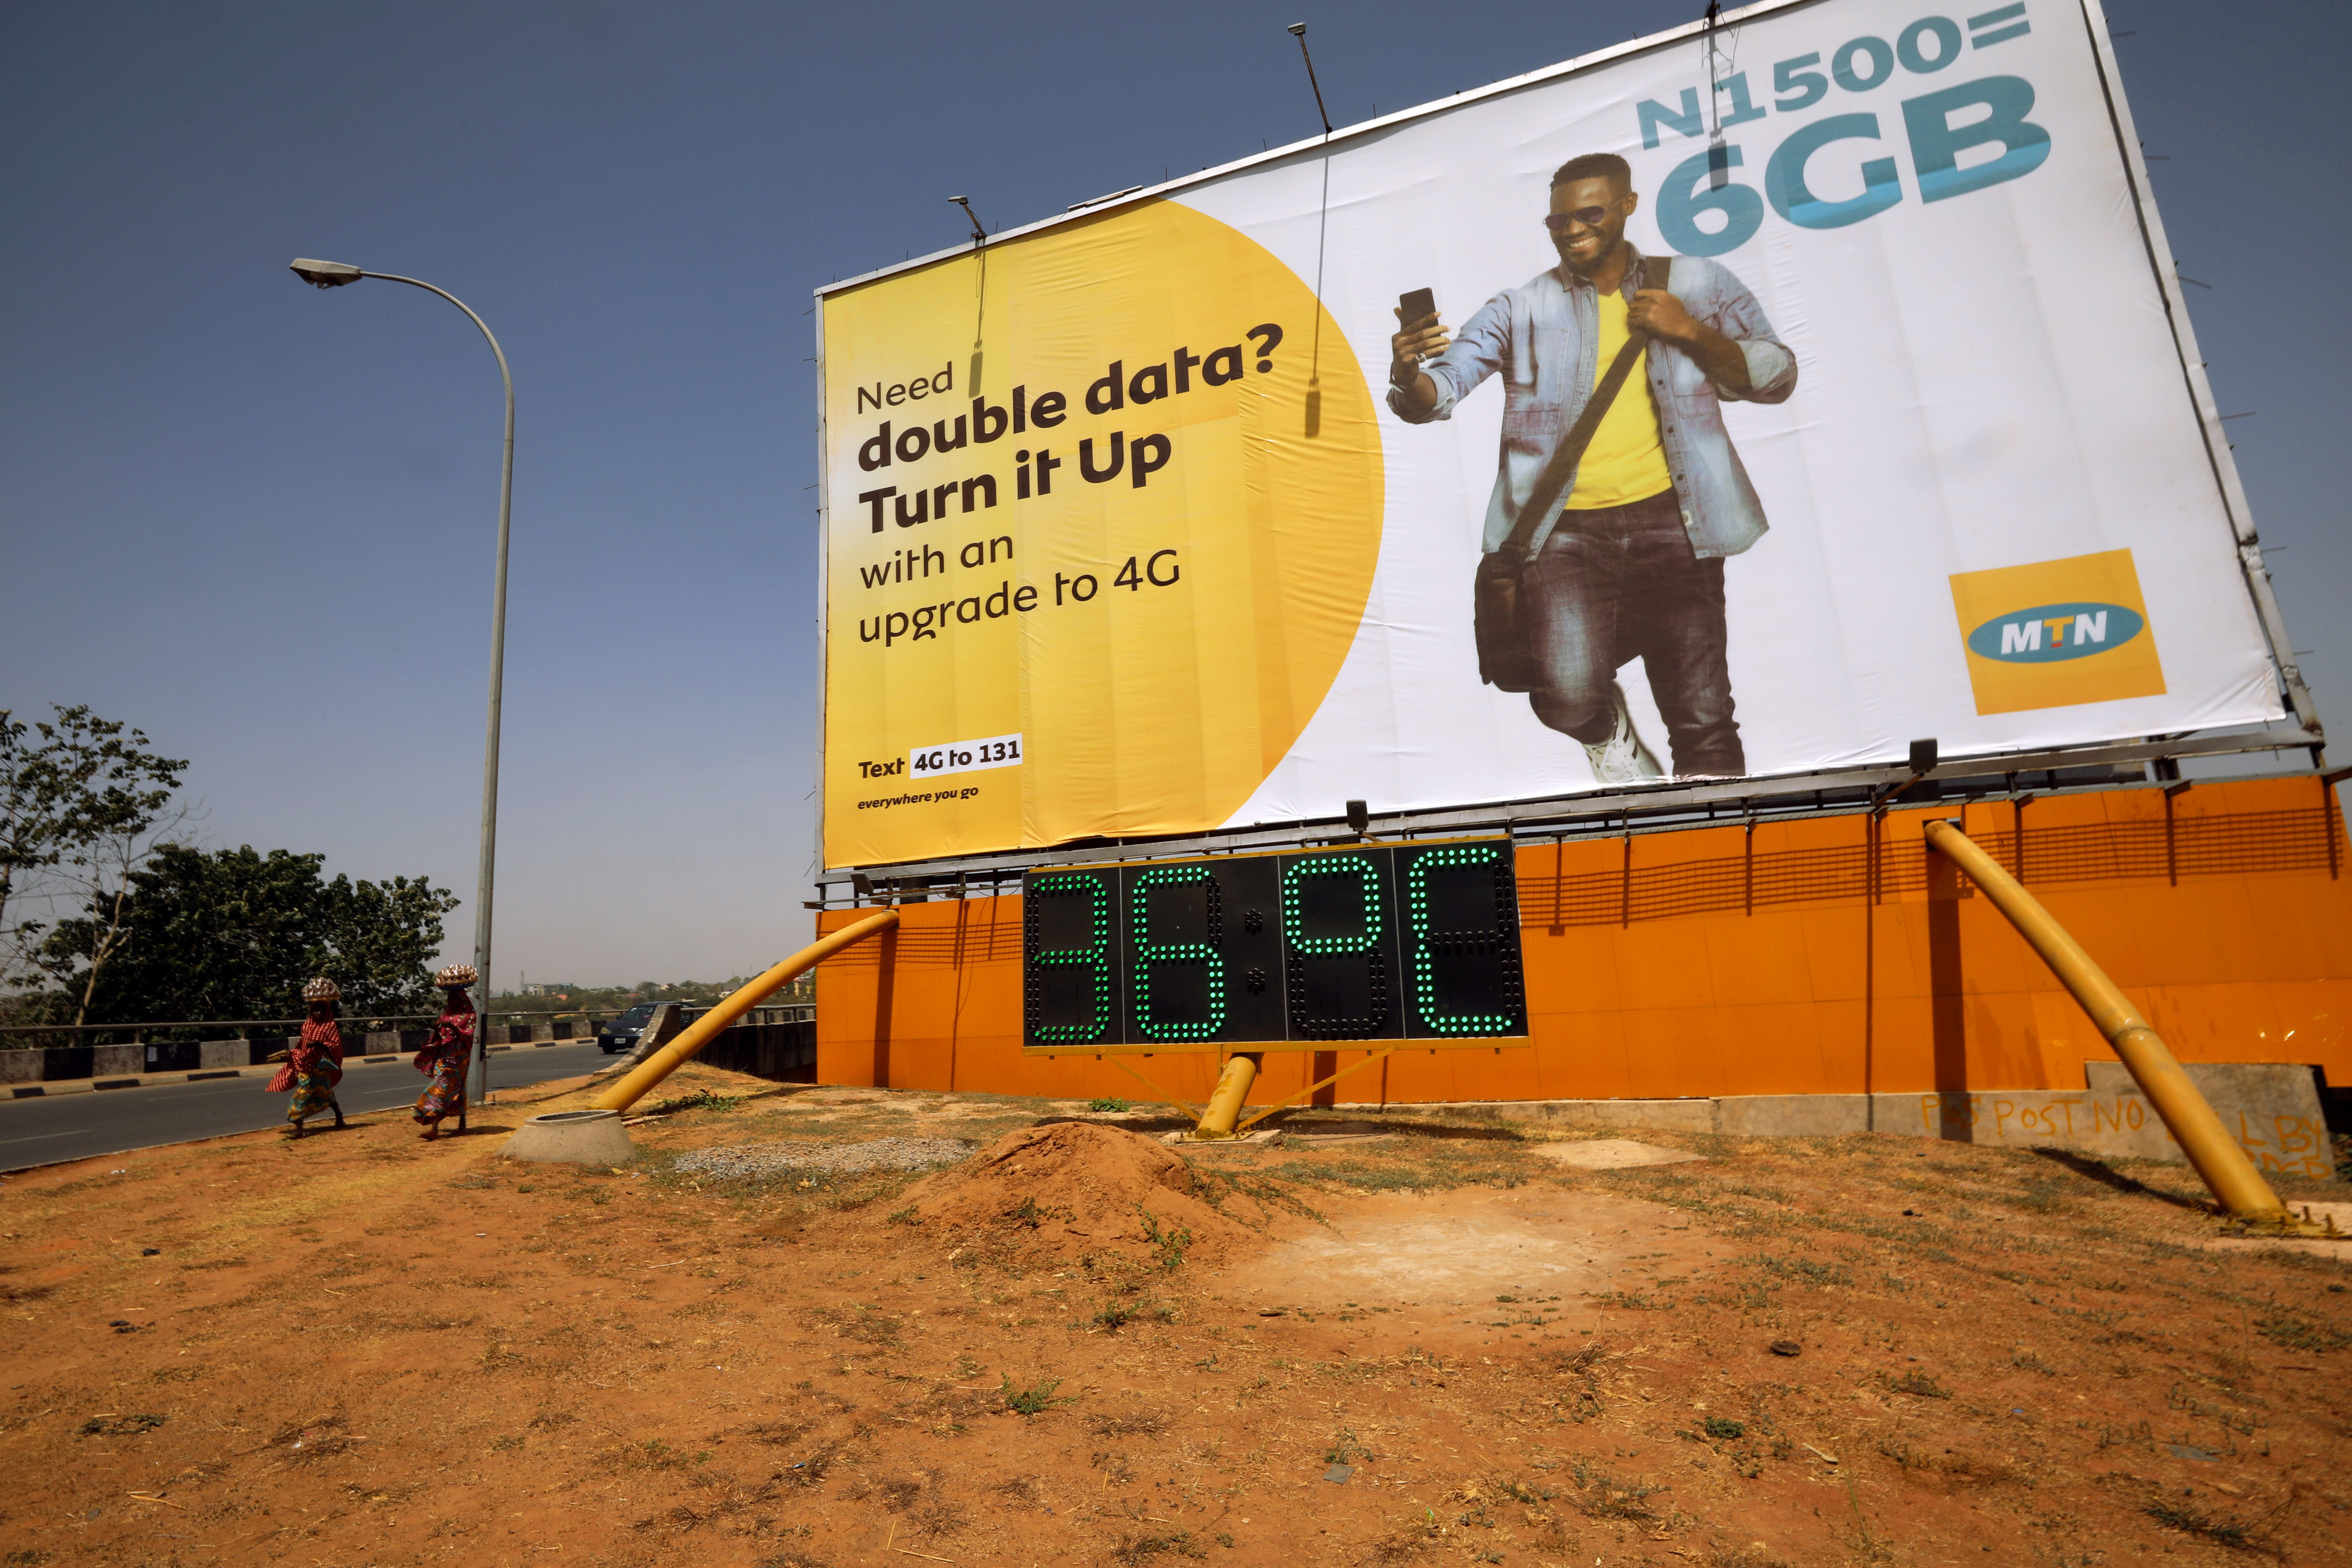 People walk past an advertising billboard for MTN telecommunication company in Abuja, Nigeria February 24, 2020. REUTERS/Afolabi Sotunde/File Photo